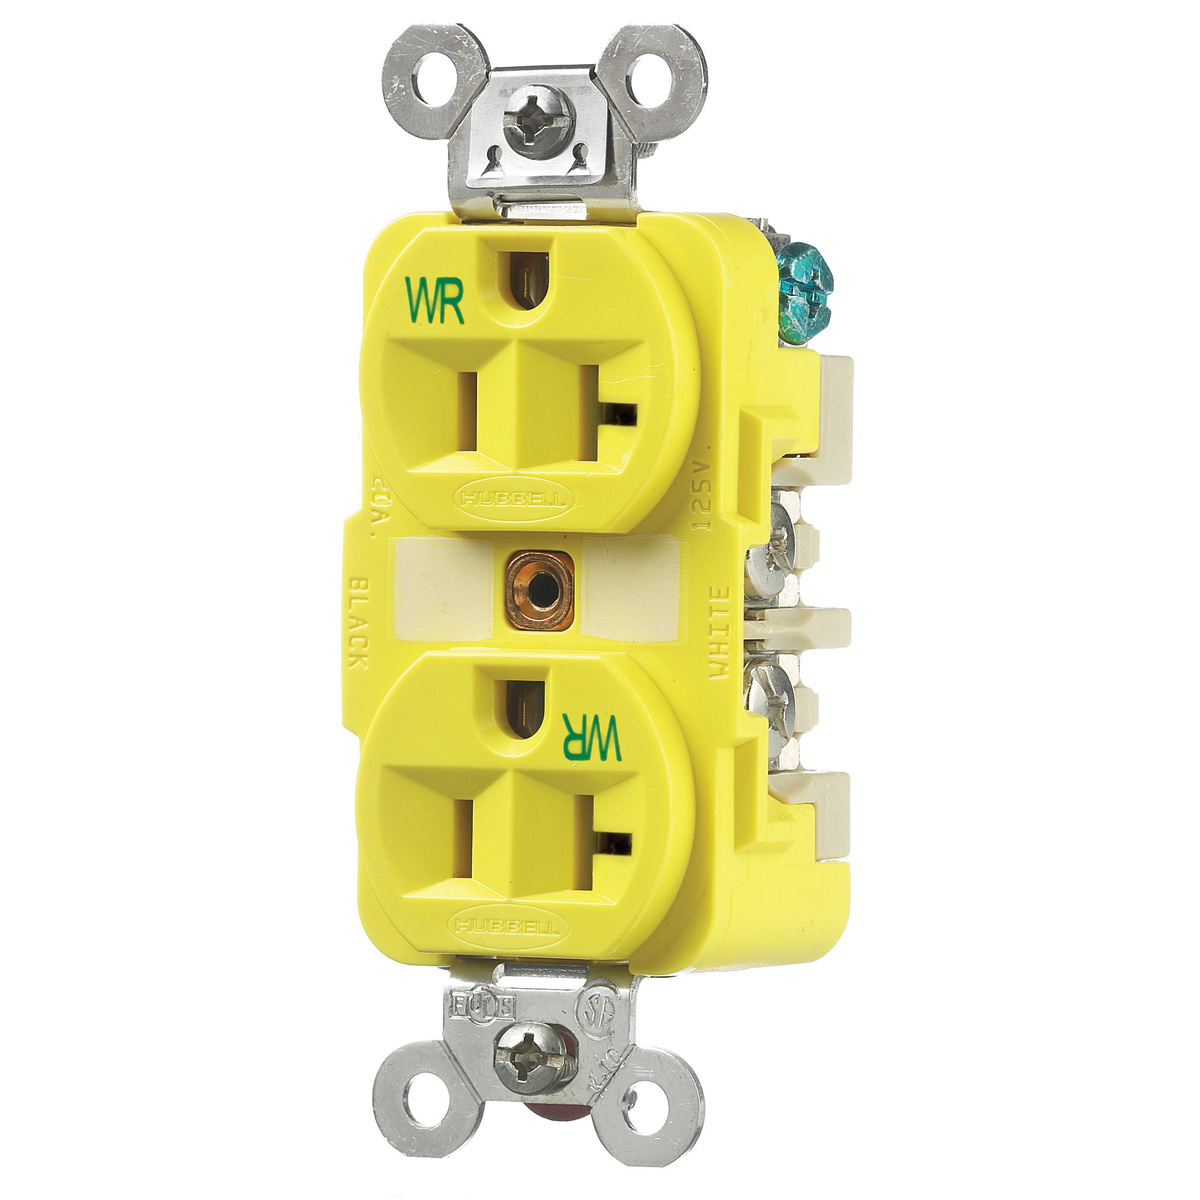 Hubbell Wiring Hbl53cm62 3 Wire 2 Pole Specification Marine Grade Duplex Receptacle Extra Heavy